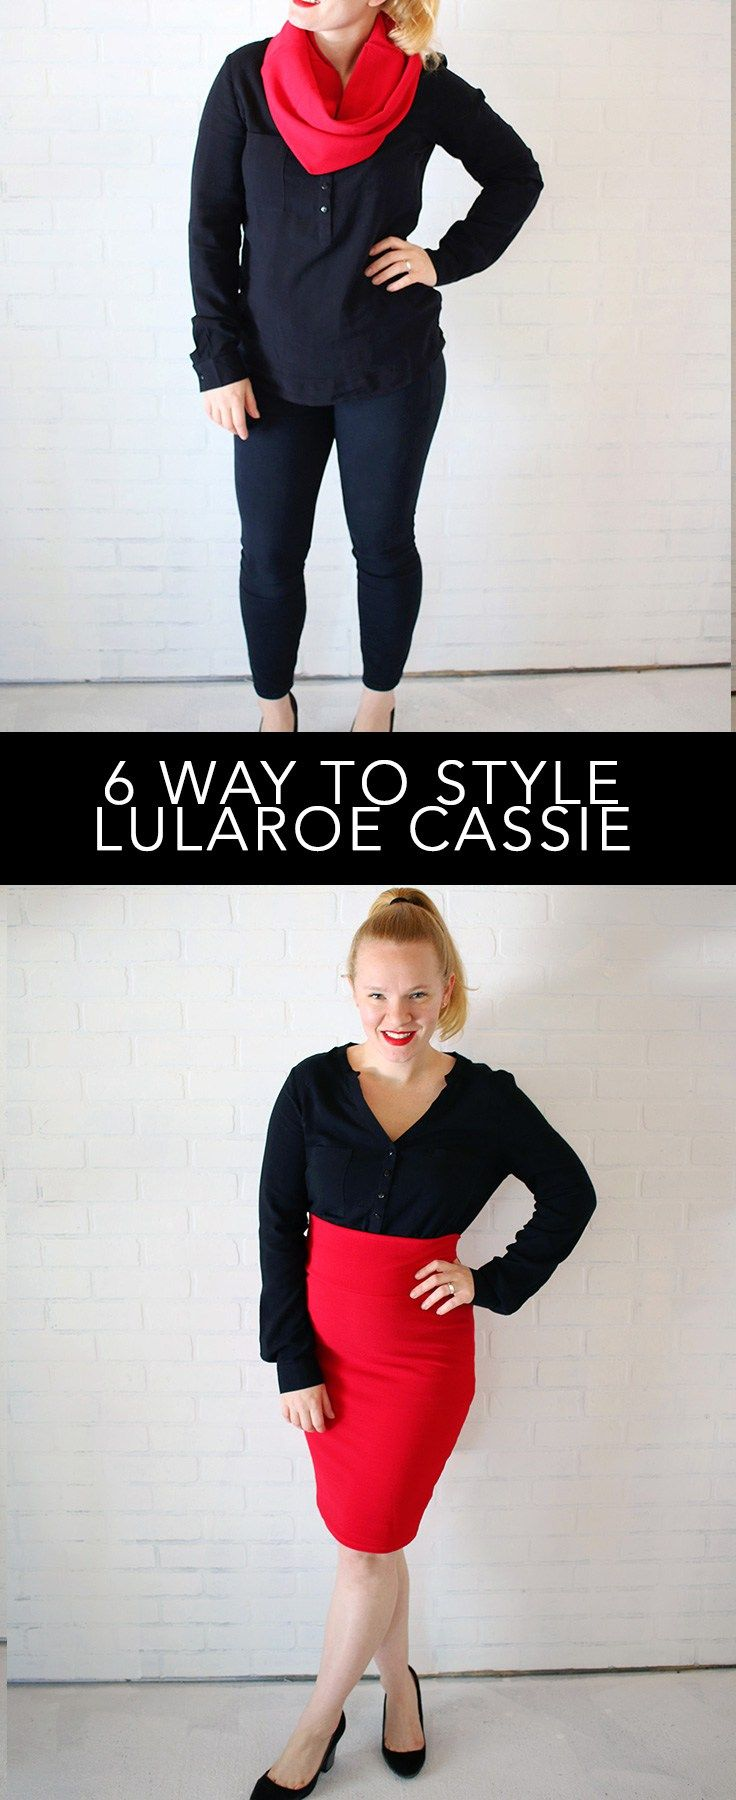 How to style Lularoe Cassie Skirt for work or play! You love the Lularoe Cassie skirt but can't figure out how to style or sizing? I'll show you the way!